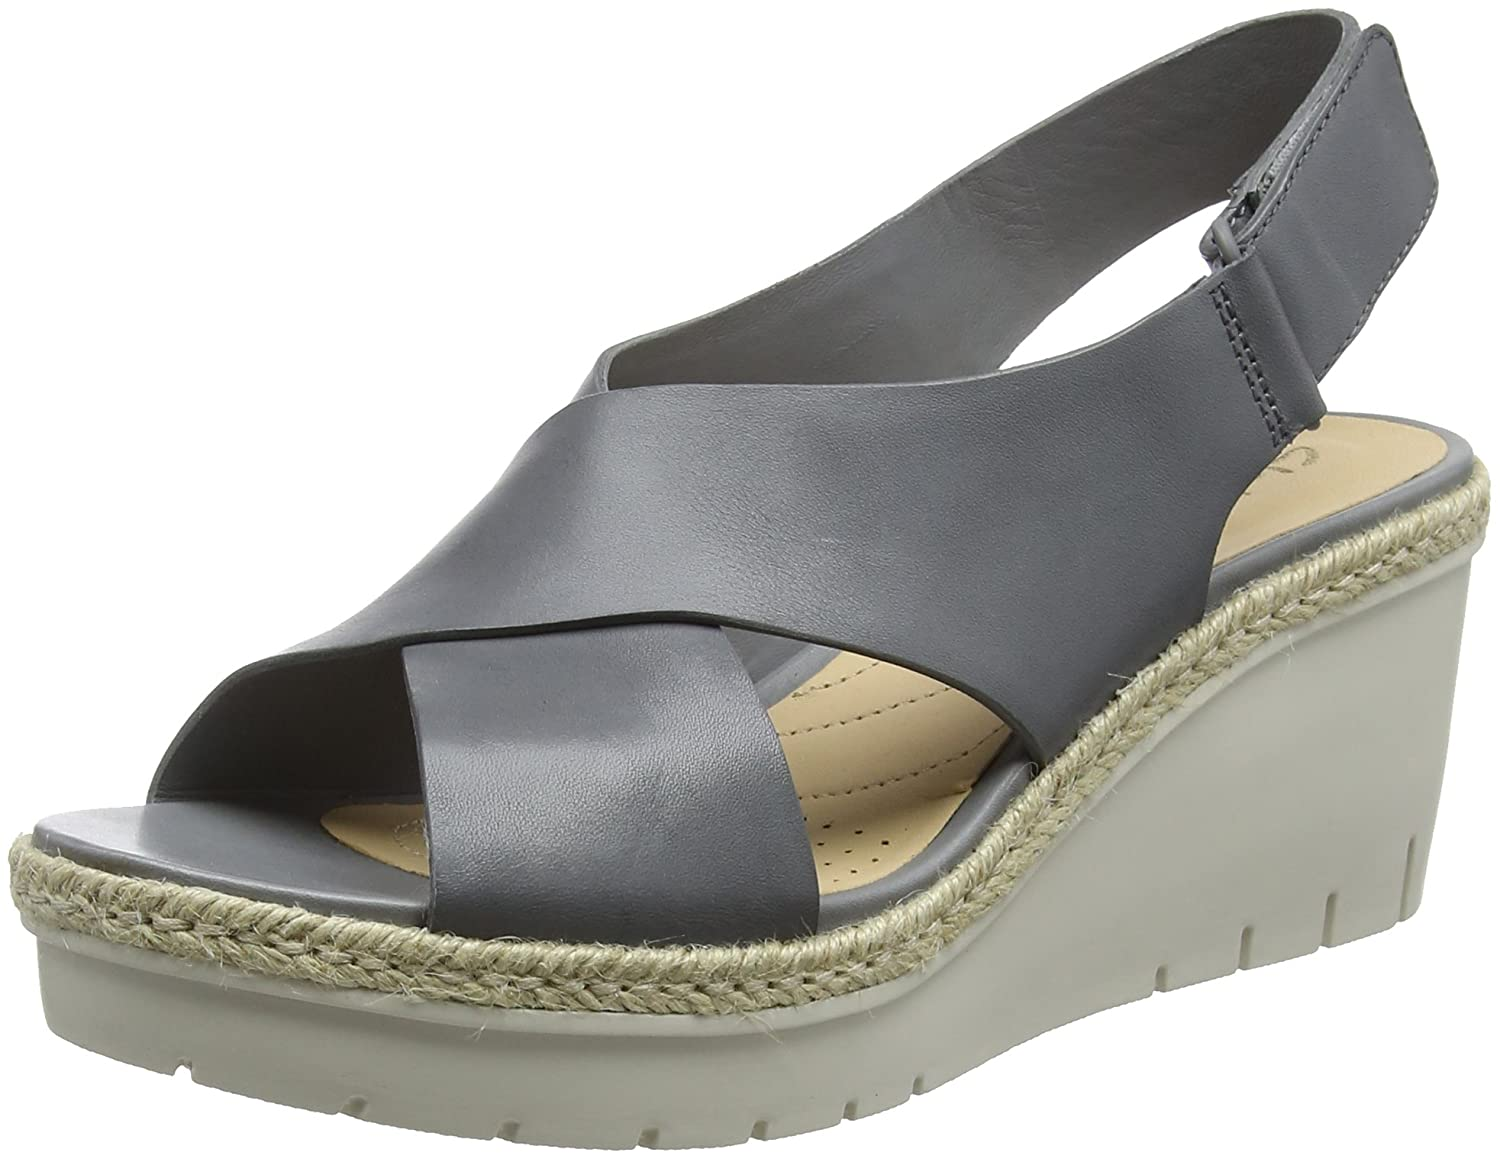 Clarks Palm Glow, Palm B000LSXRV0 Sandales Leather) Bride Cheville Femme Gris (Grey Leather) 9939dcf - latesttechnology.space